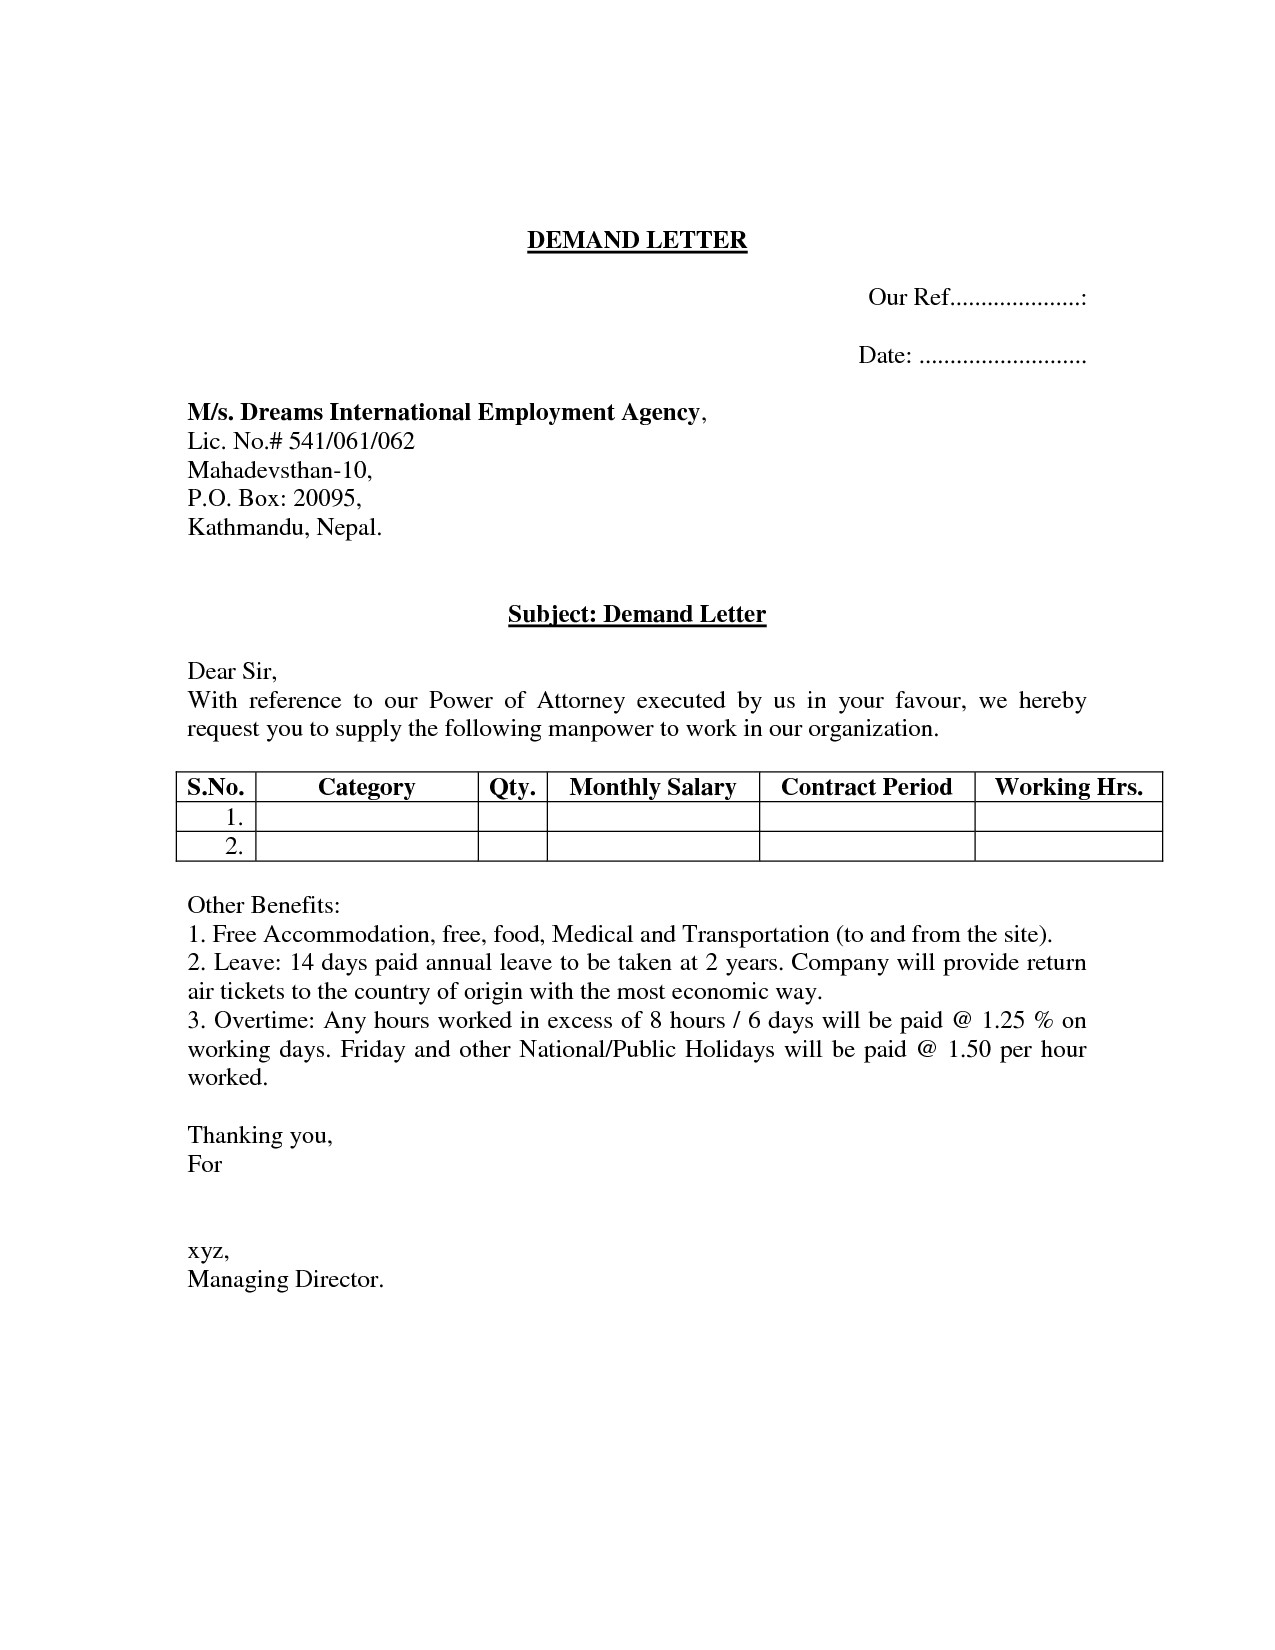 Demand for Payment Letter Template Free - 15 Fresh Demand Letter Breach Contract